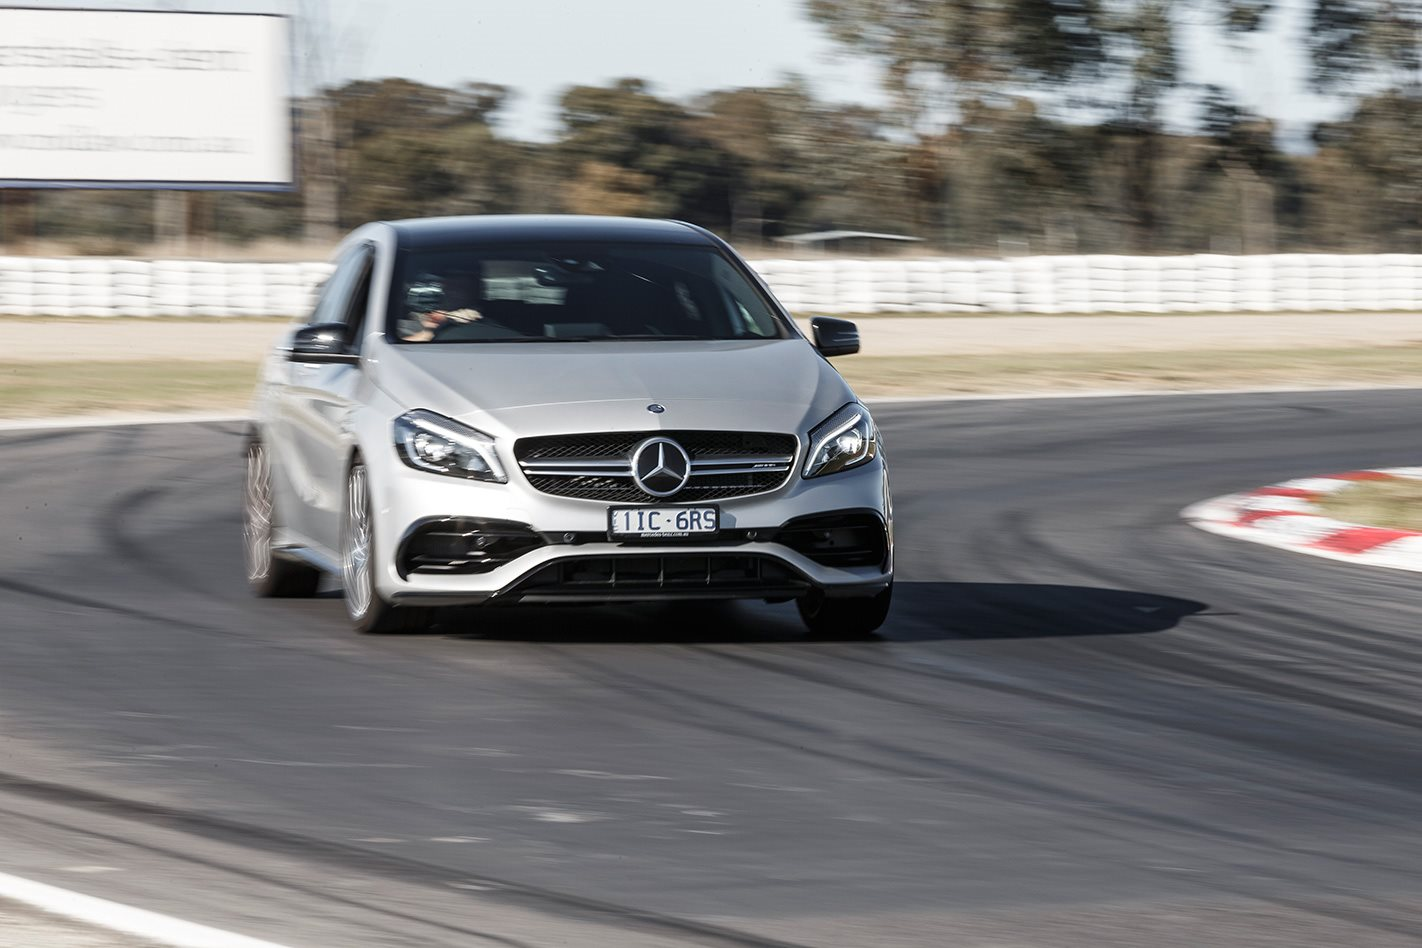 2017 Mercedes AMG A45 front.jpg